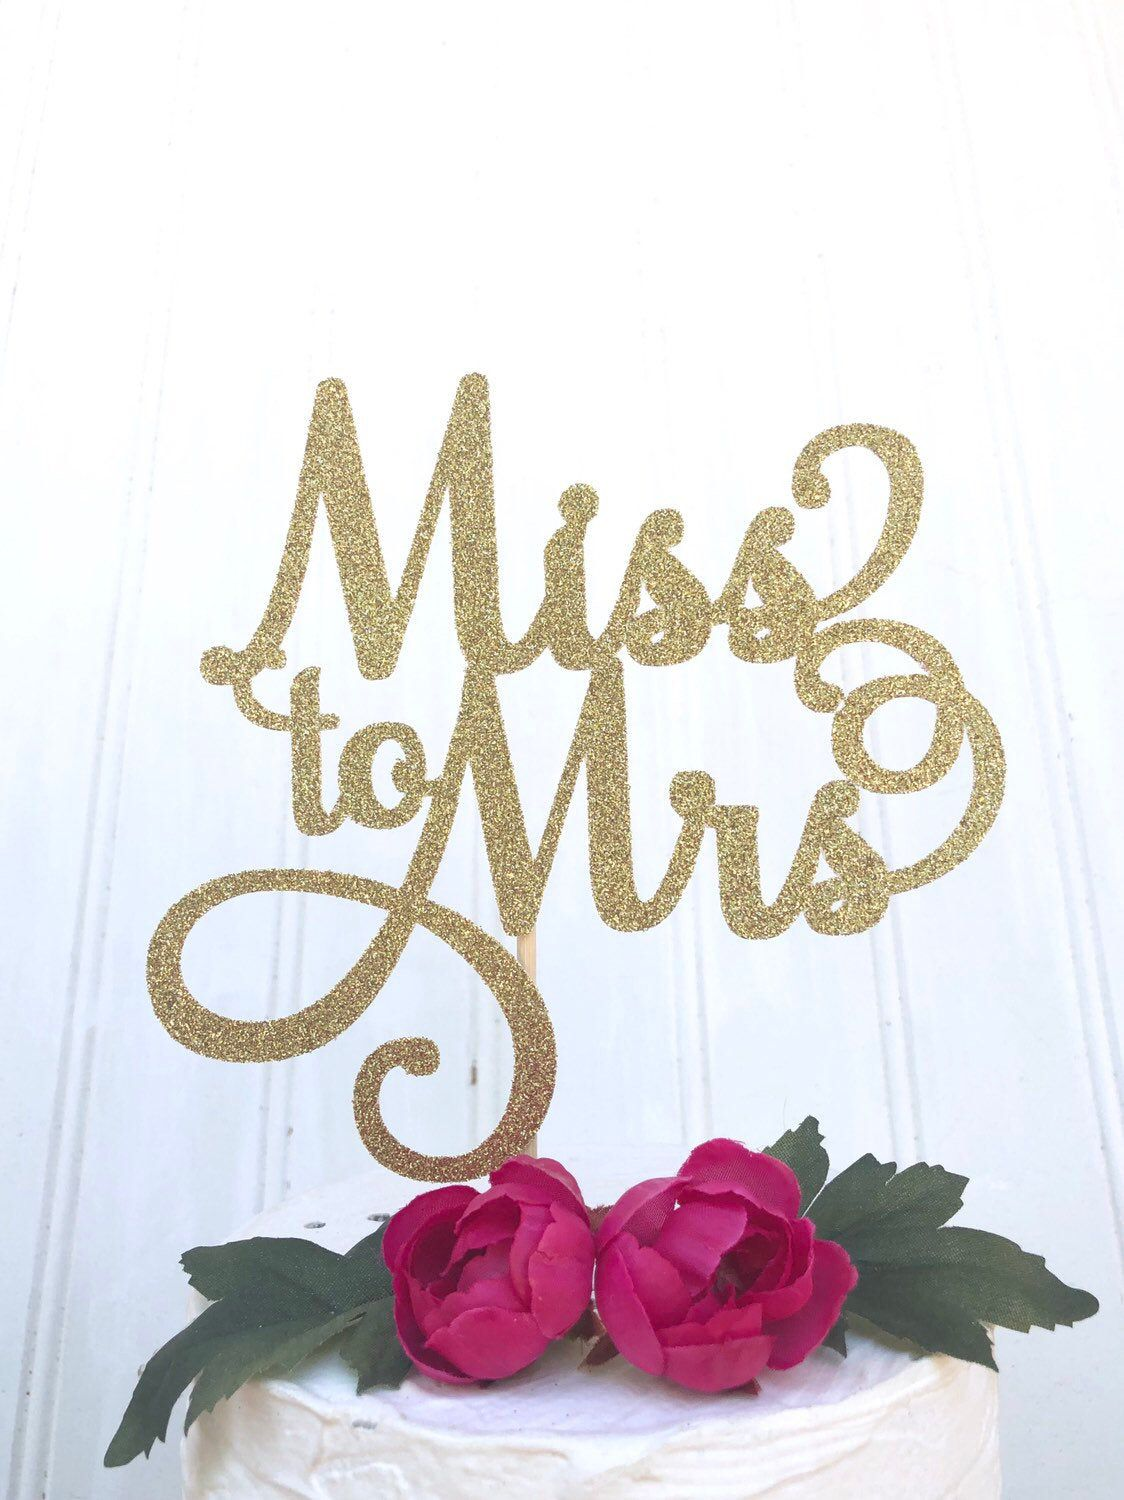 Bridal Shower Cake Topper Bride to Be Cake Topper Bachelorette Cake Topper Future Mrs Cake Topper Wedding Cake She Said Yes Cake Topper